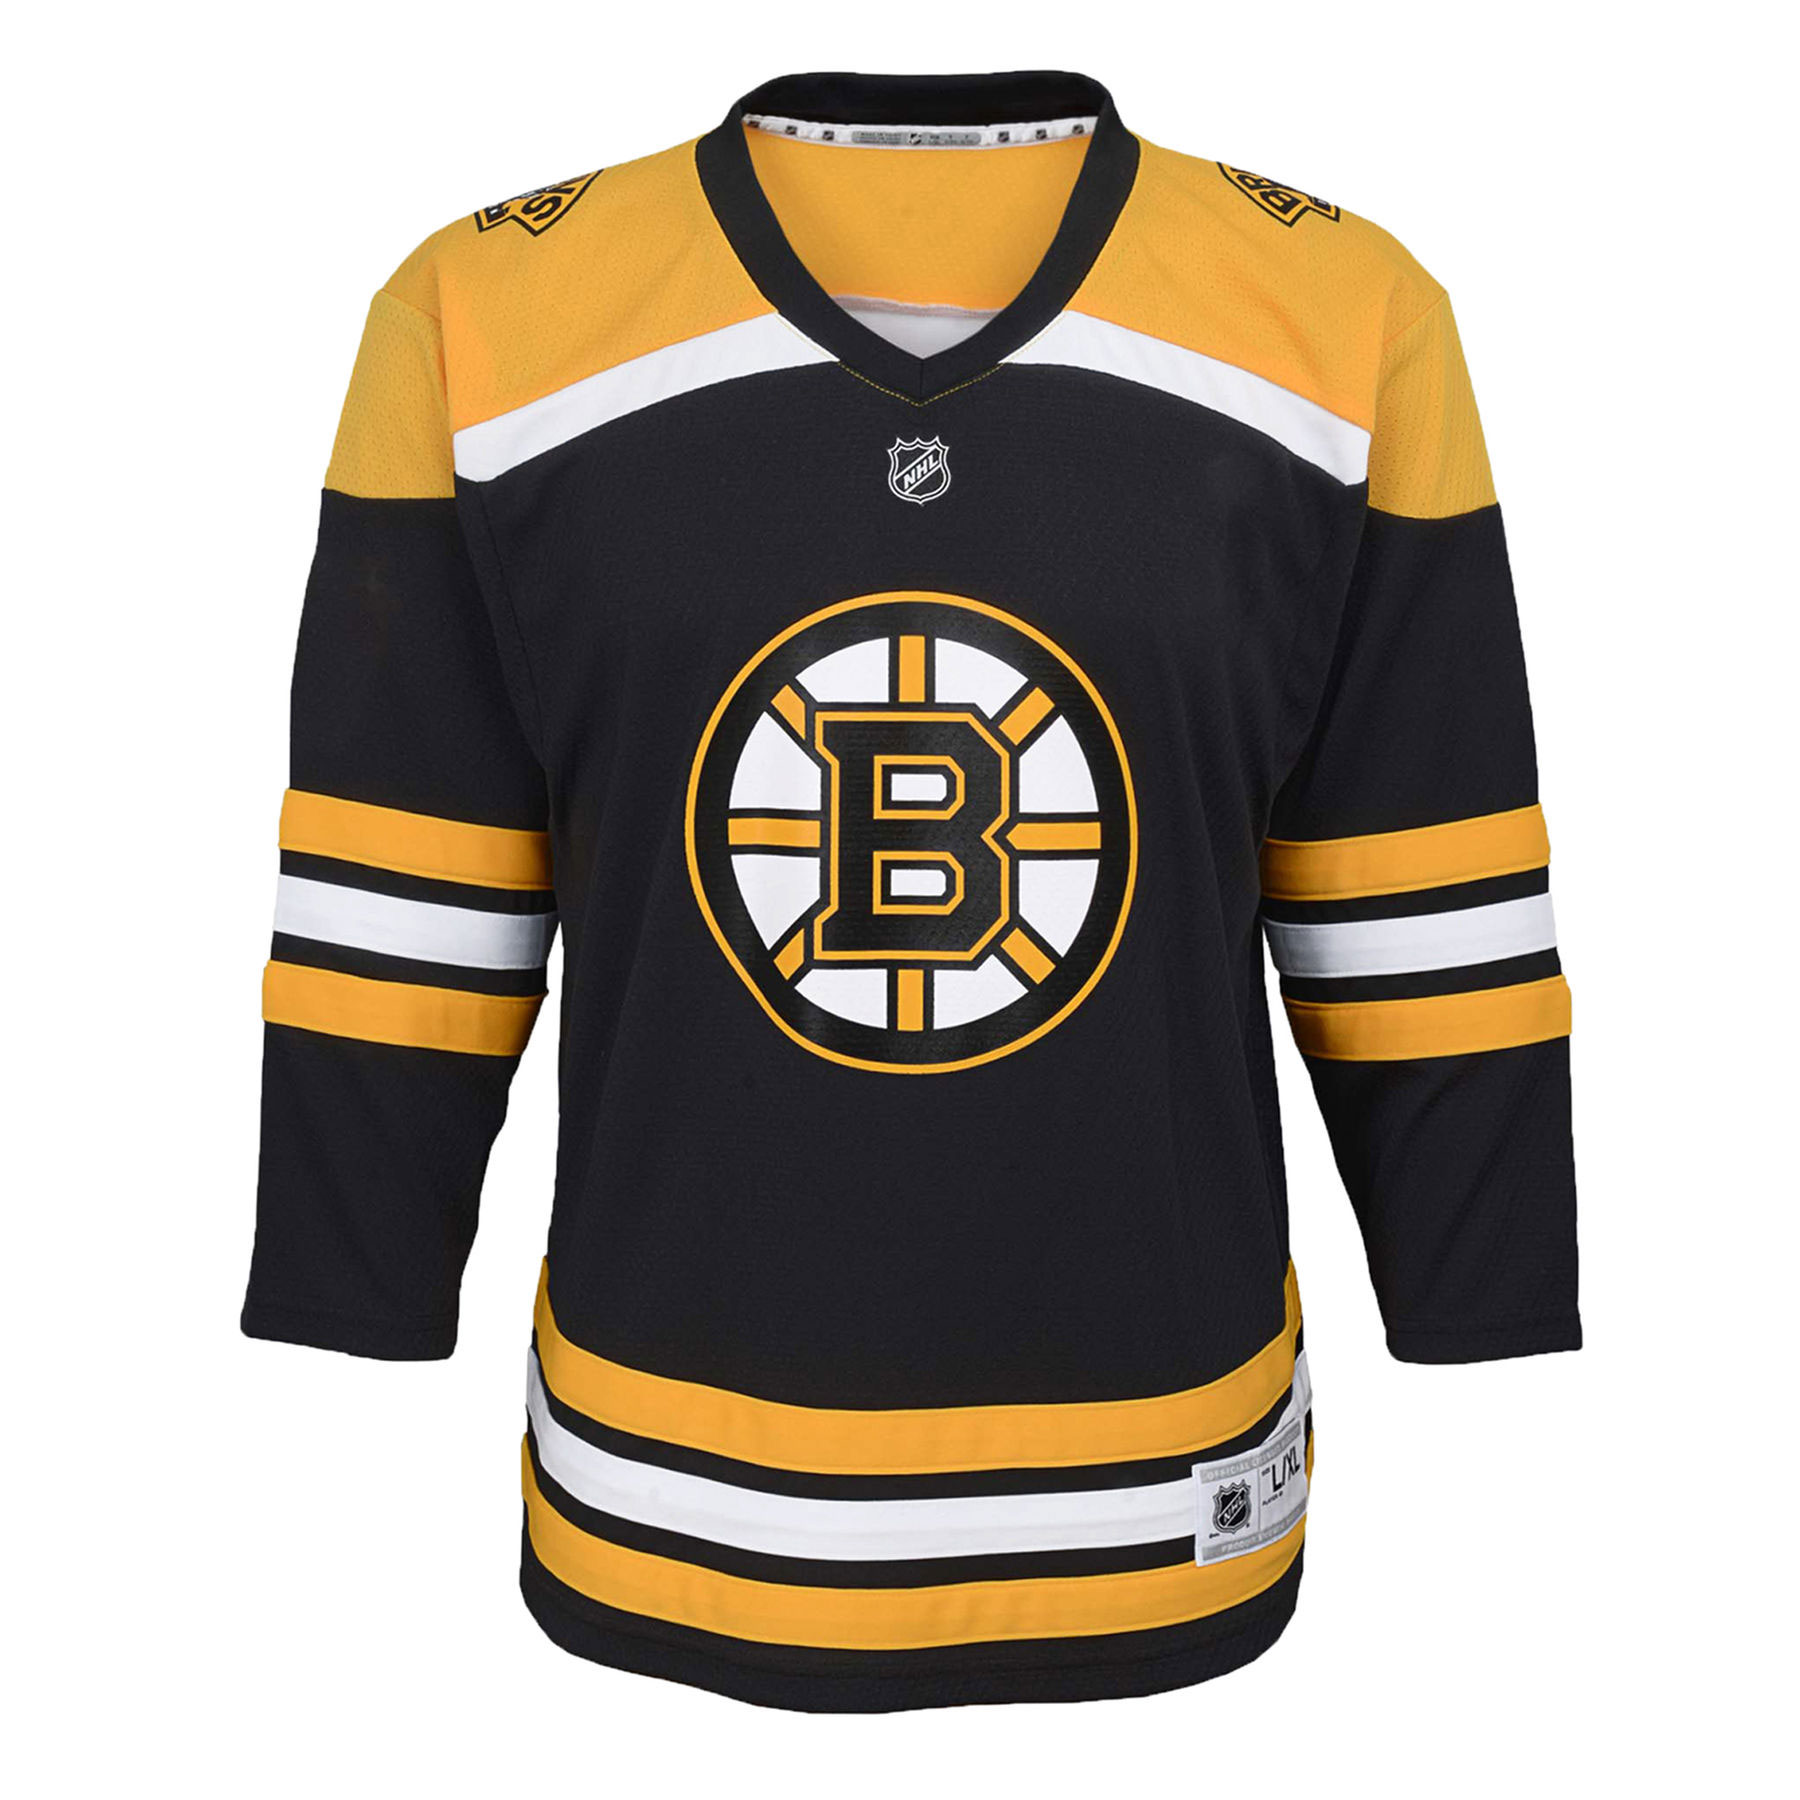 reputable site 76158 794eb Boston Bruins NHL Toddler Replica (2-4T) Home Hockey Jersey ...